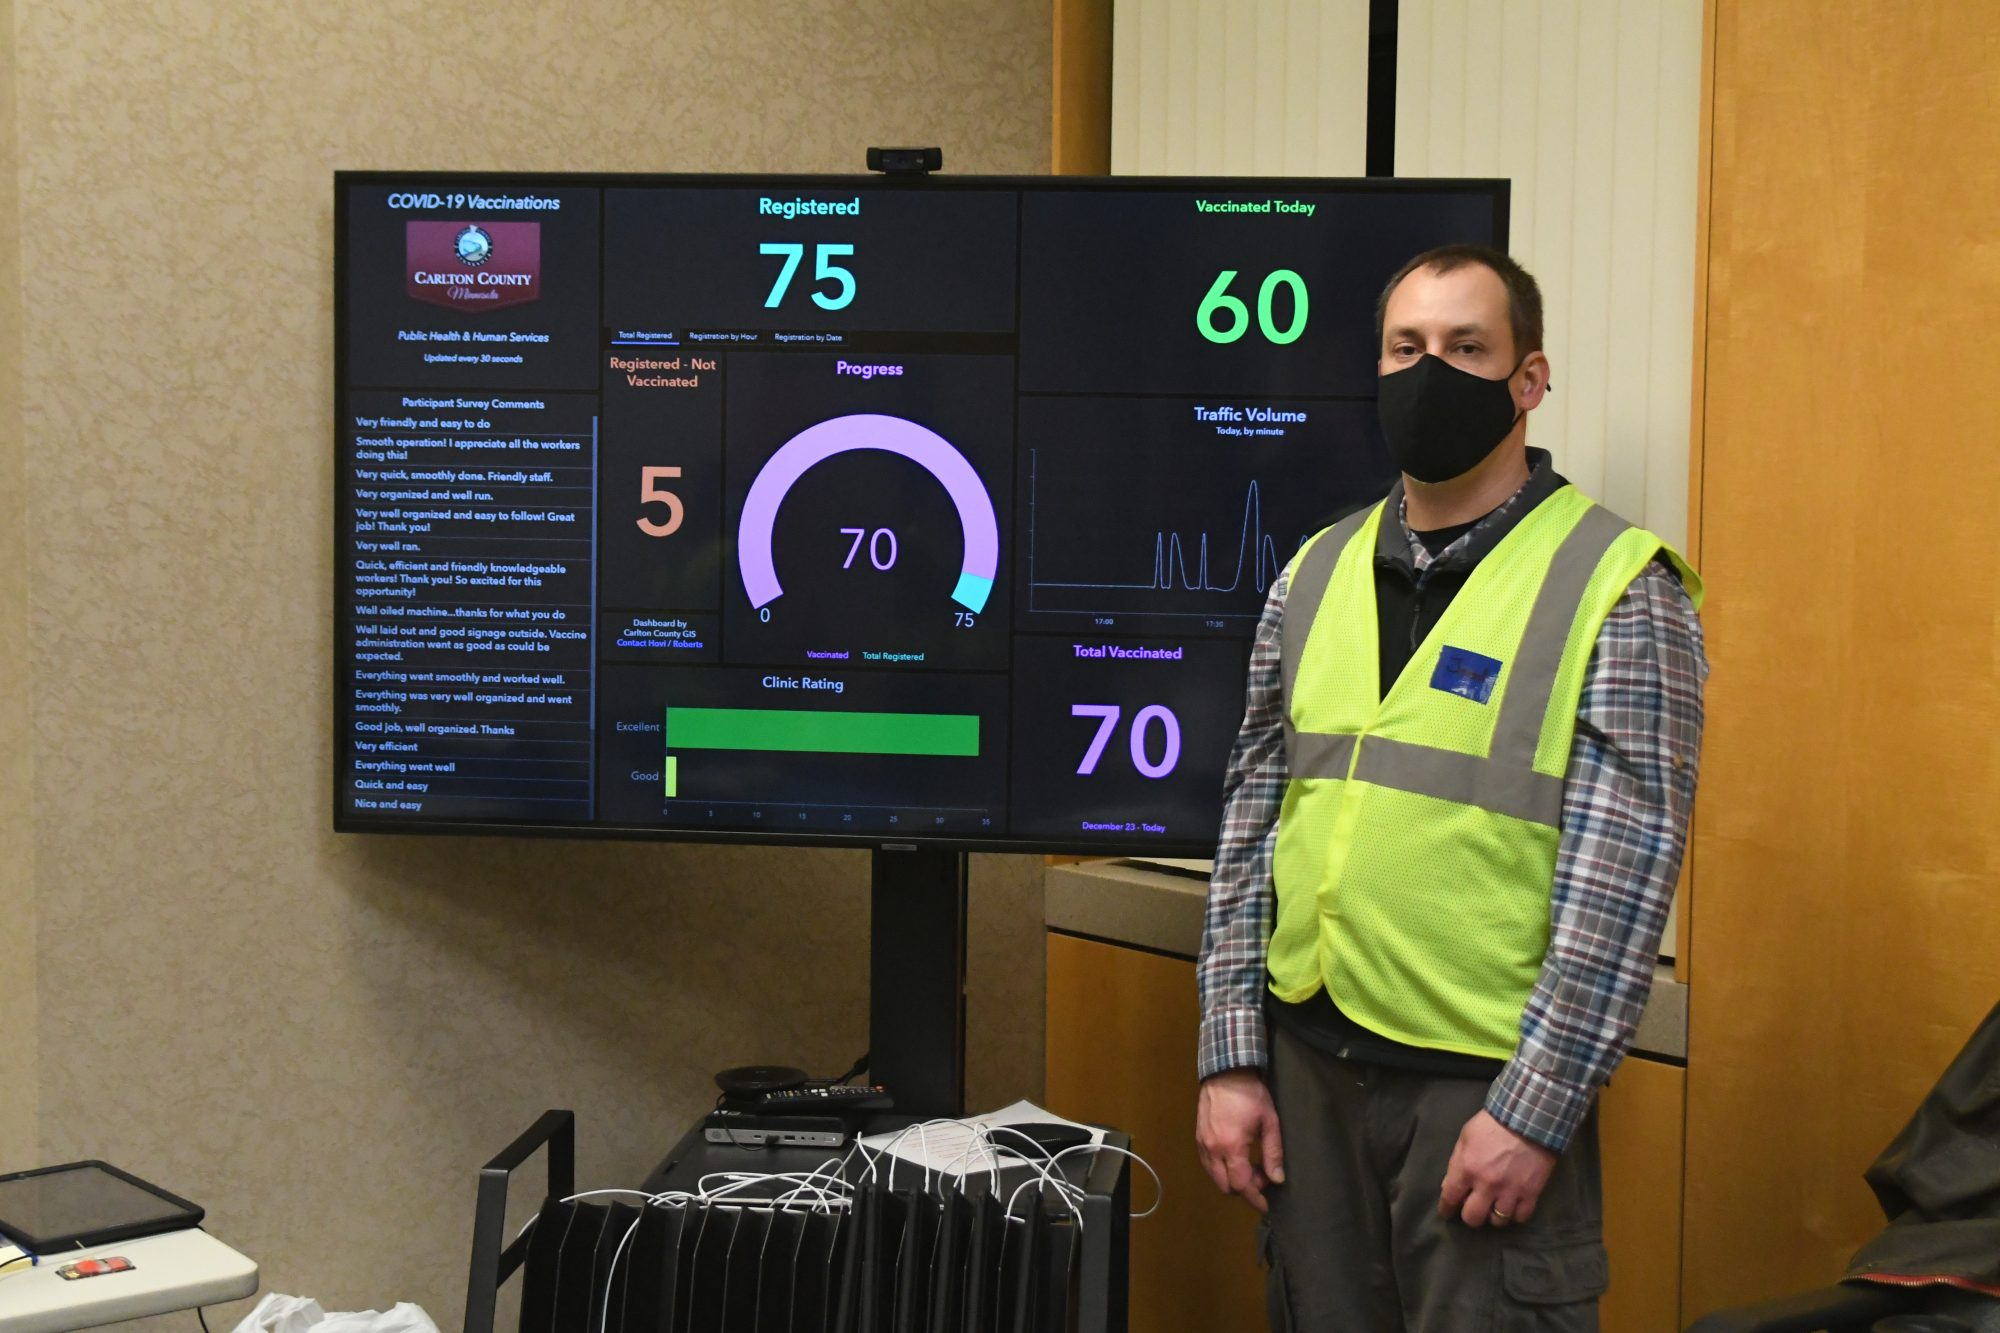 Jared Hovi, Carlton County GIS Coordinator, in front of the Esri dashboard showing the progress of the drive-through COVID-19 vaccine clinic.